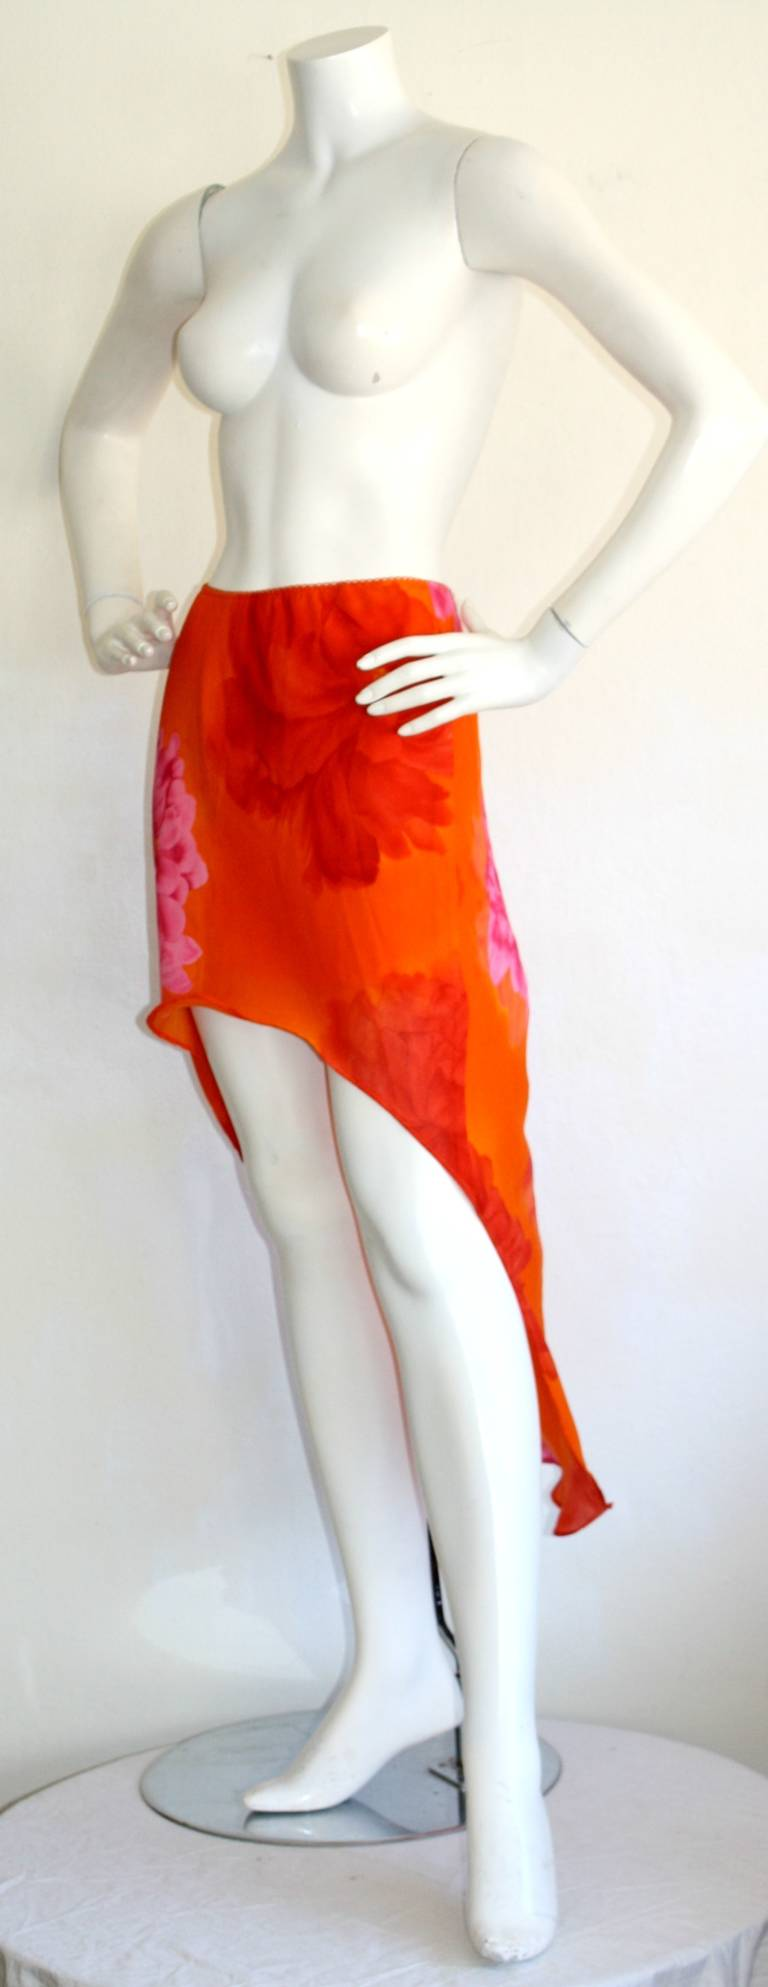 Women's Pierre Cardin Vintage 1980s Runway 80s Hi Lo Pink Orange Ombré Mermaid Skirt For Sale